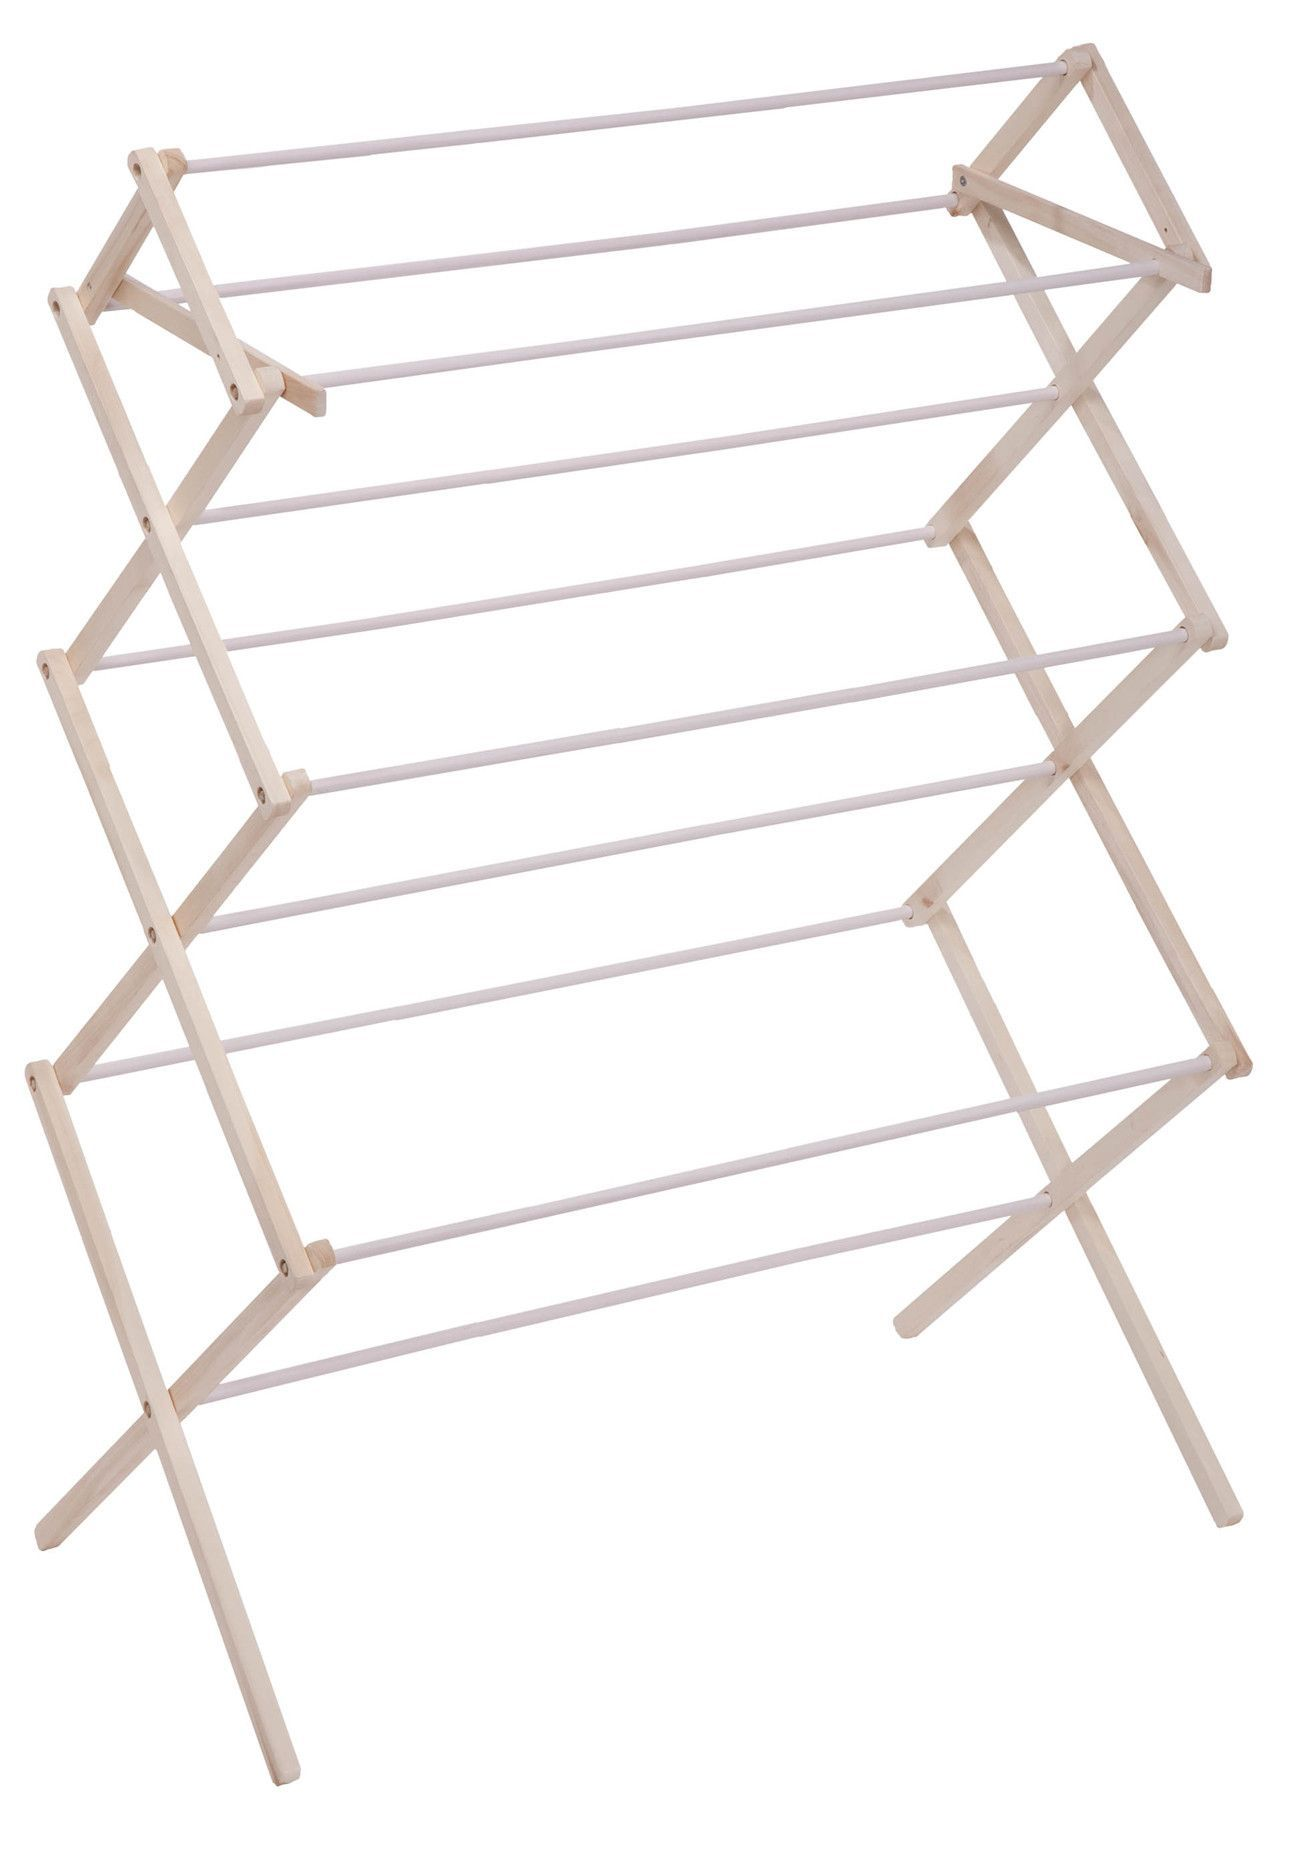 Drying rack kckdwn l products pinterest products